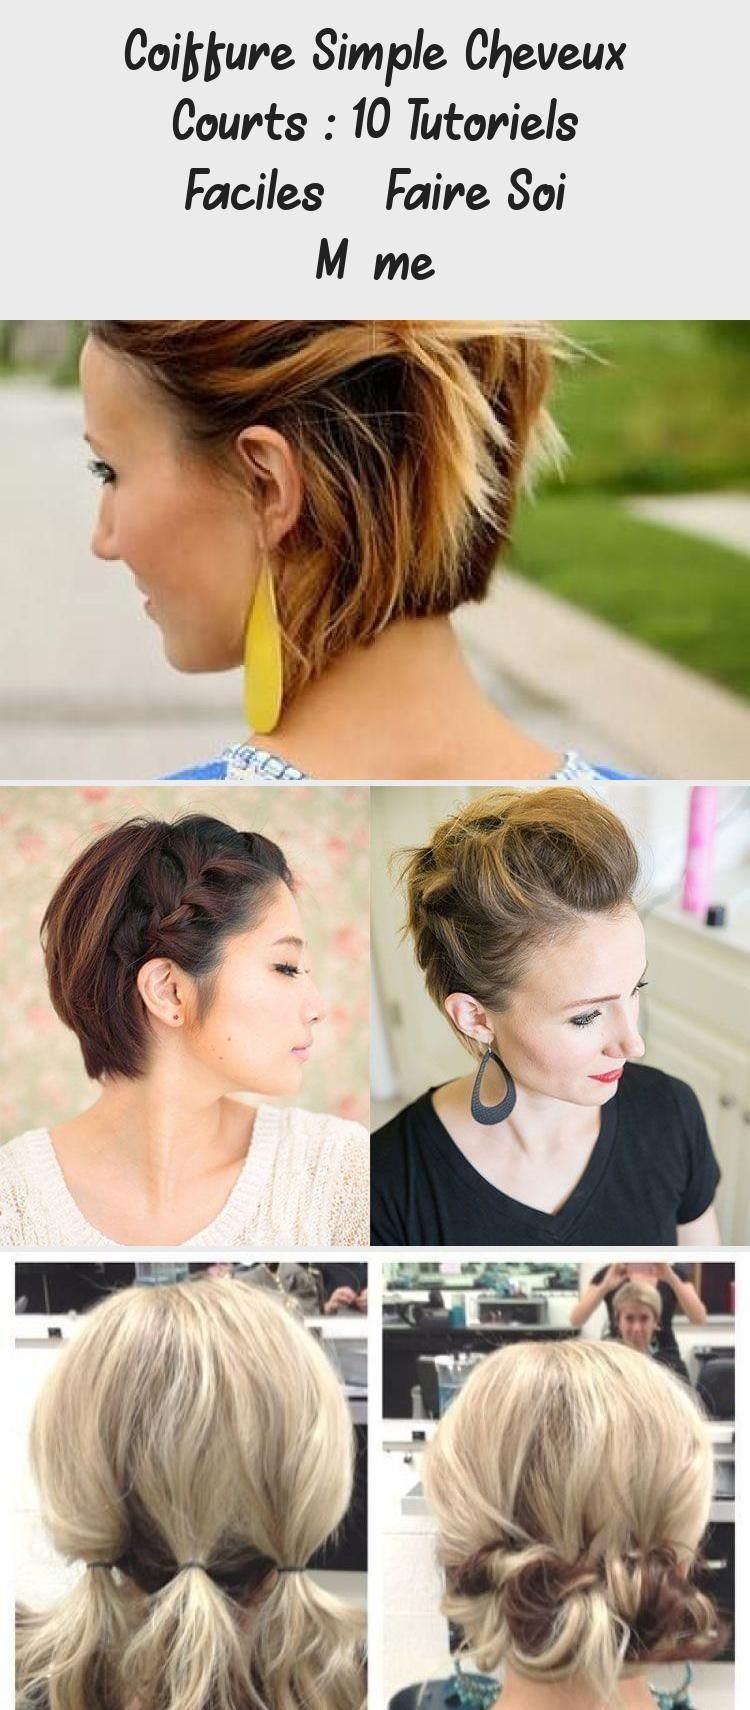 Coiffure Simple Cheveux Courts 10 Tutoriels Faciles A Faire Soi Meme Cheveuxcourtafricain Cheveuxcourtcaramel In 2020 Easy Hairstyles Short Hair Styles Hairstyle